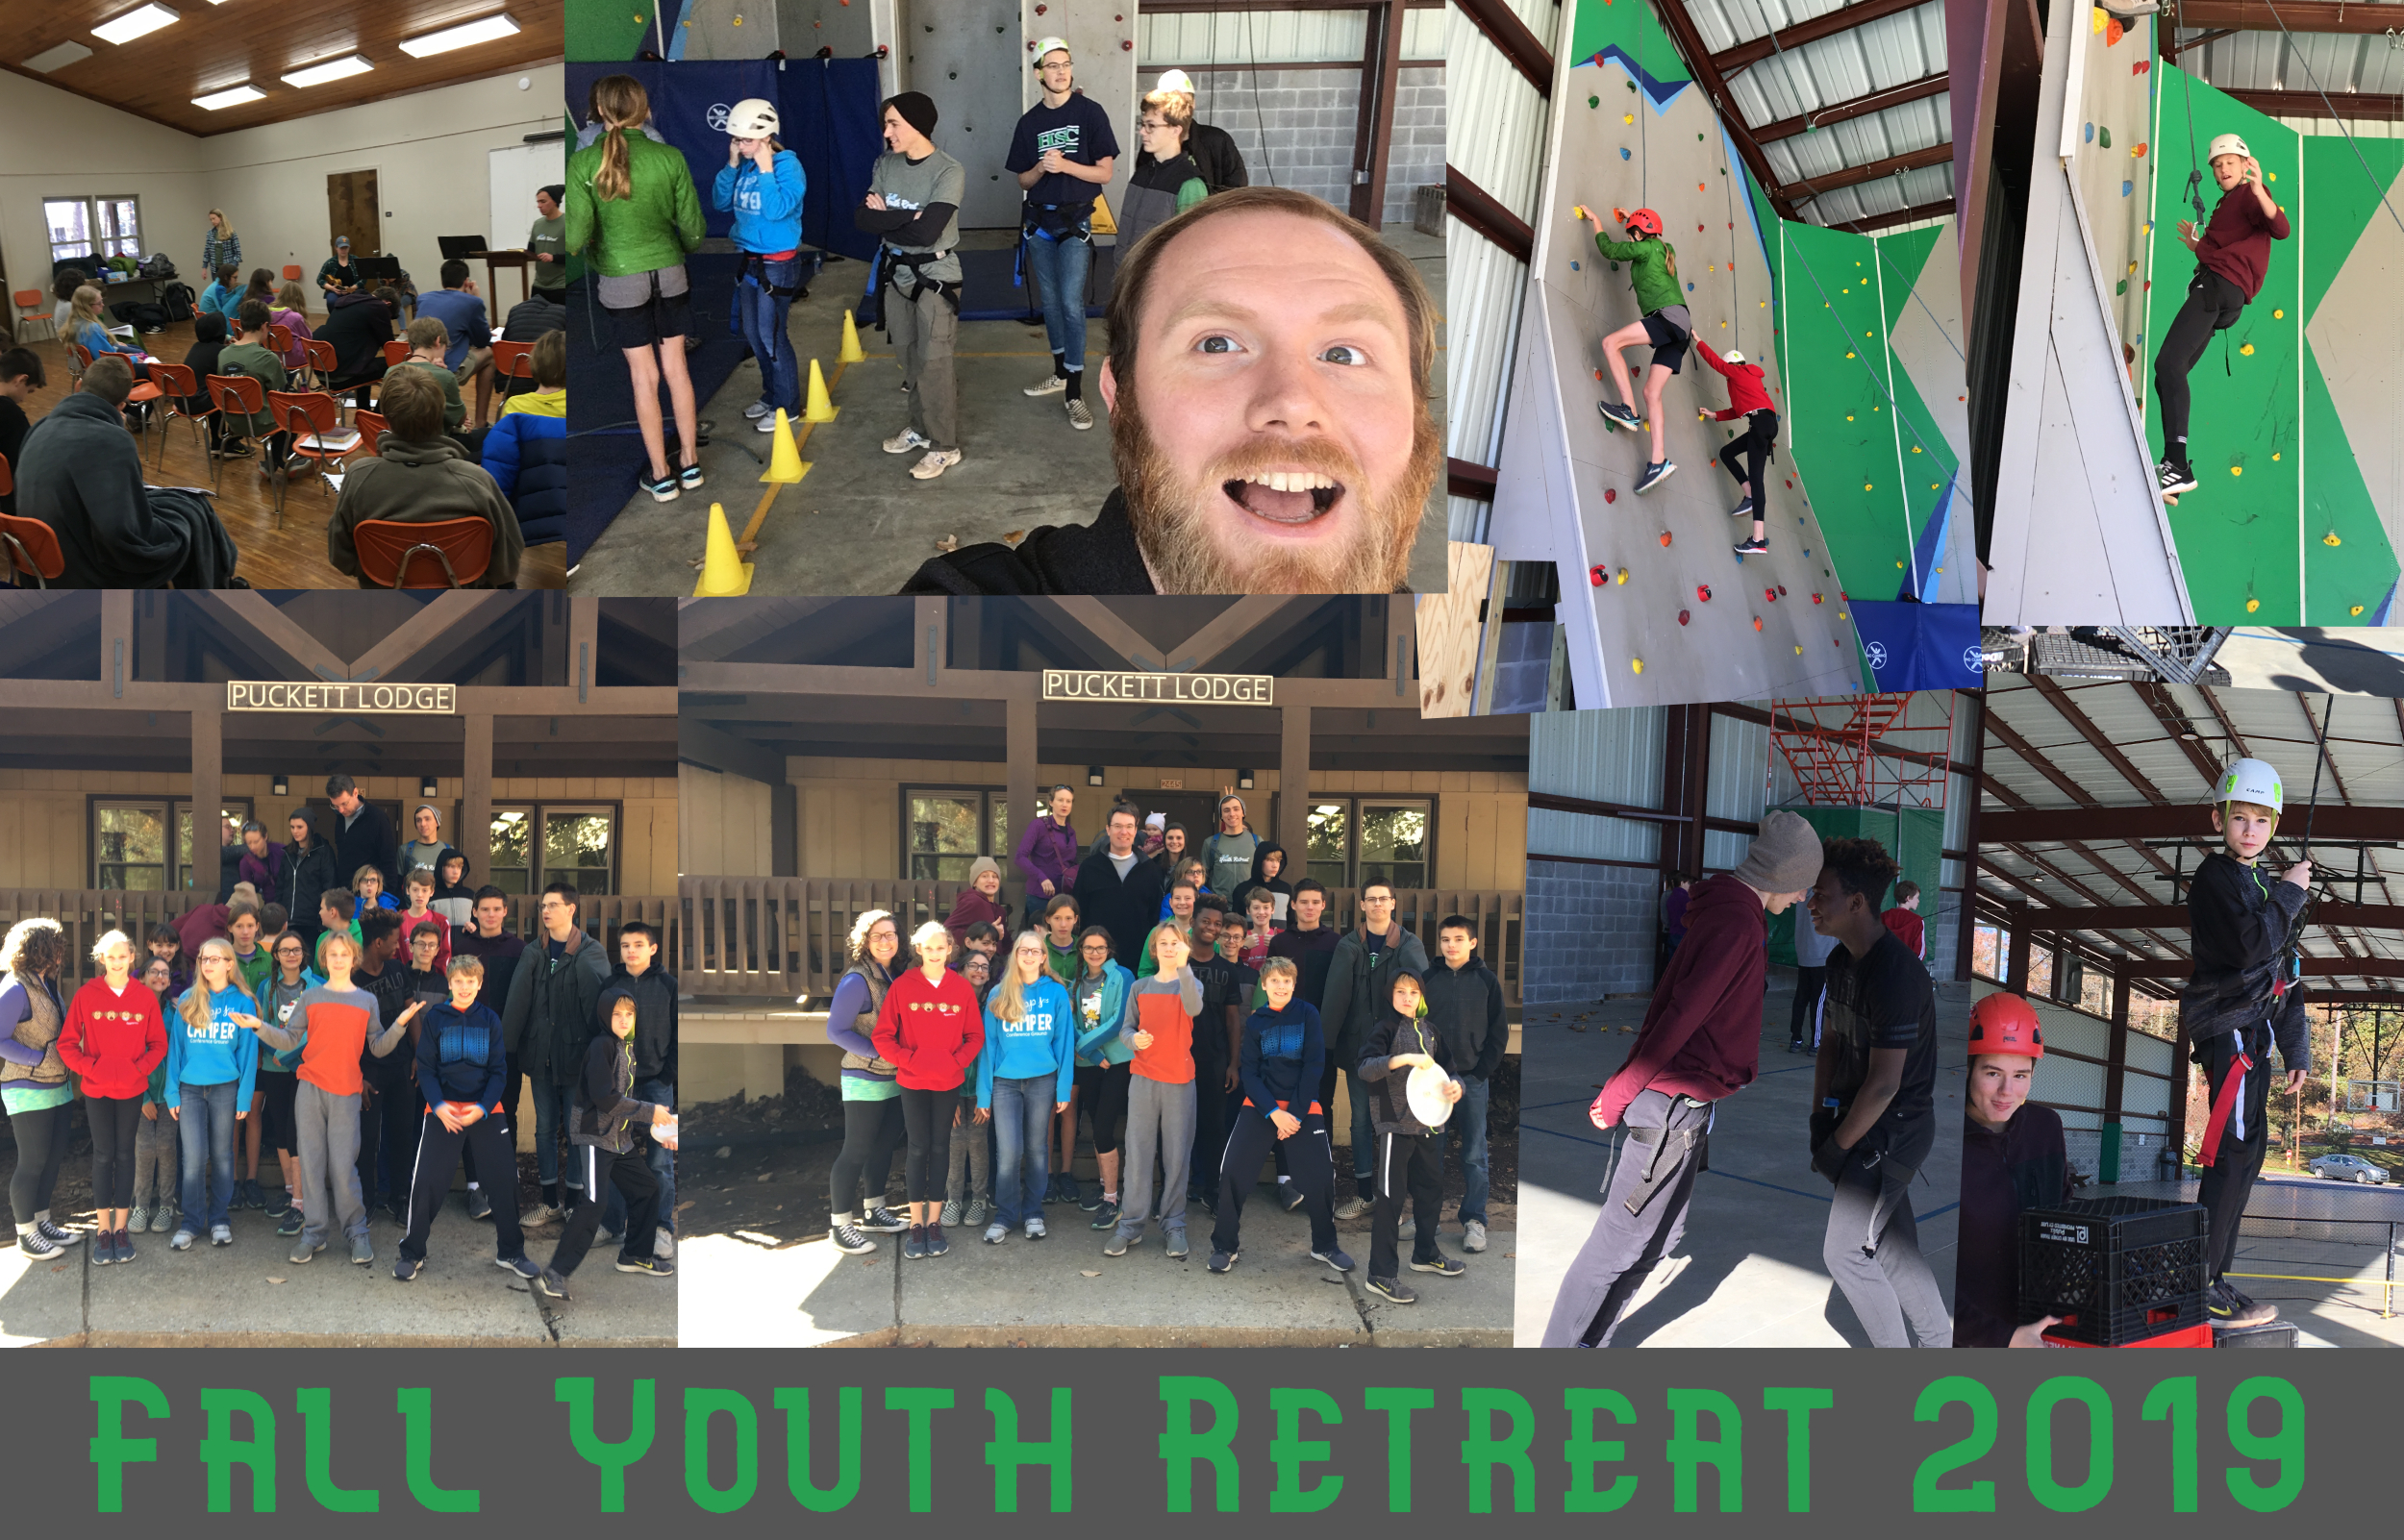 Fall Youth Retreat Collage